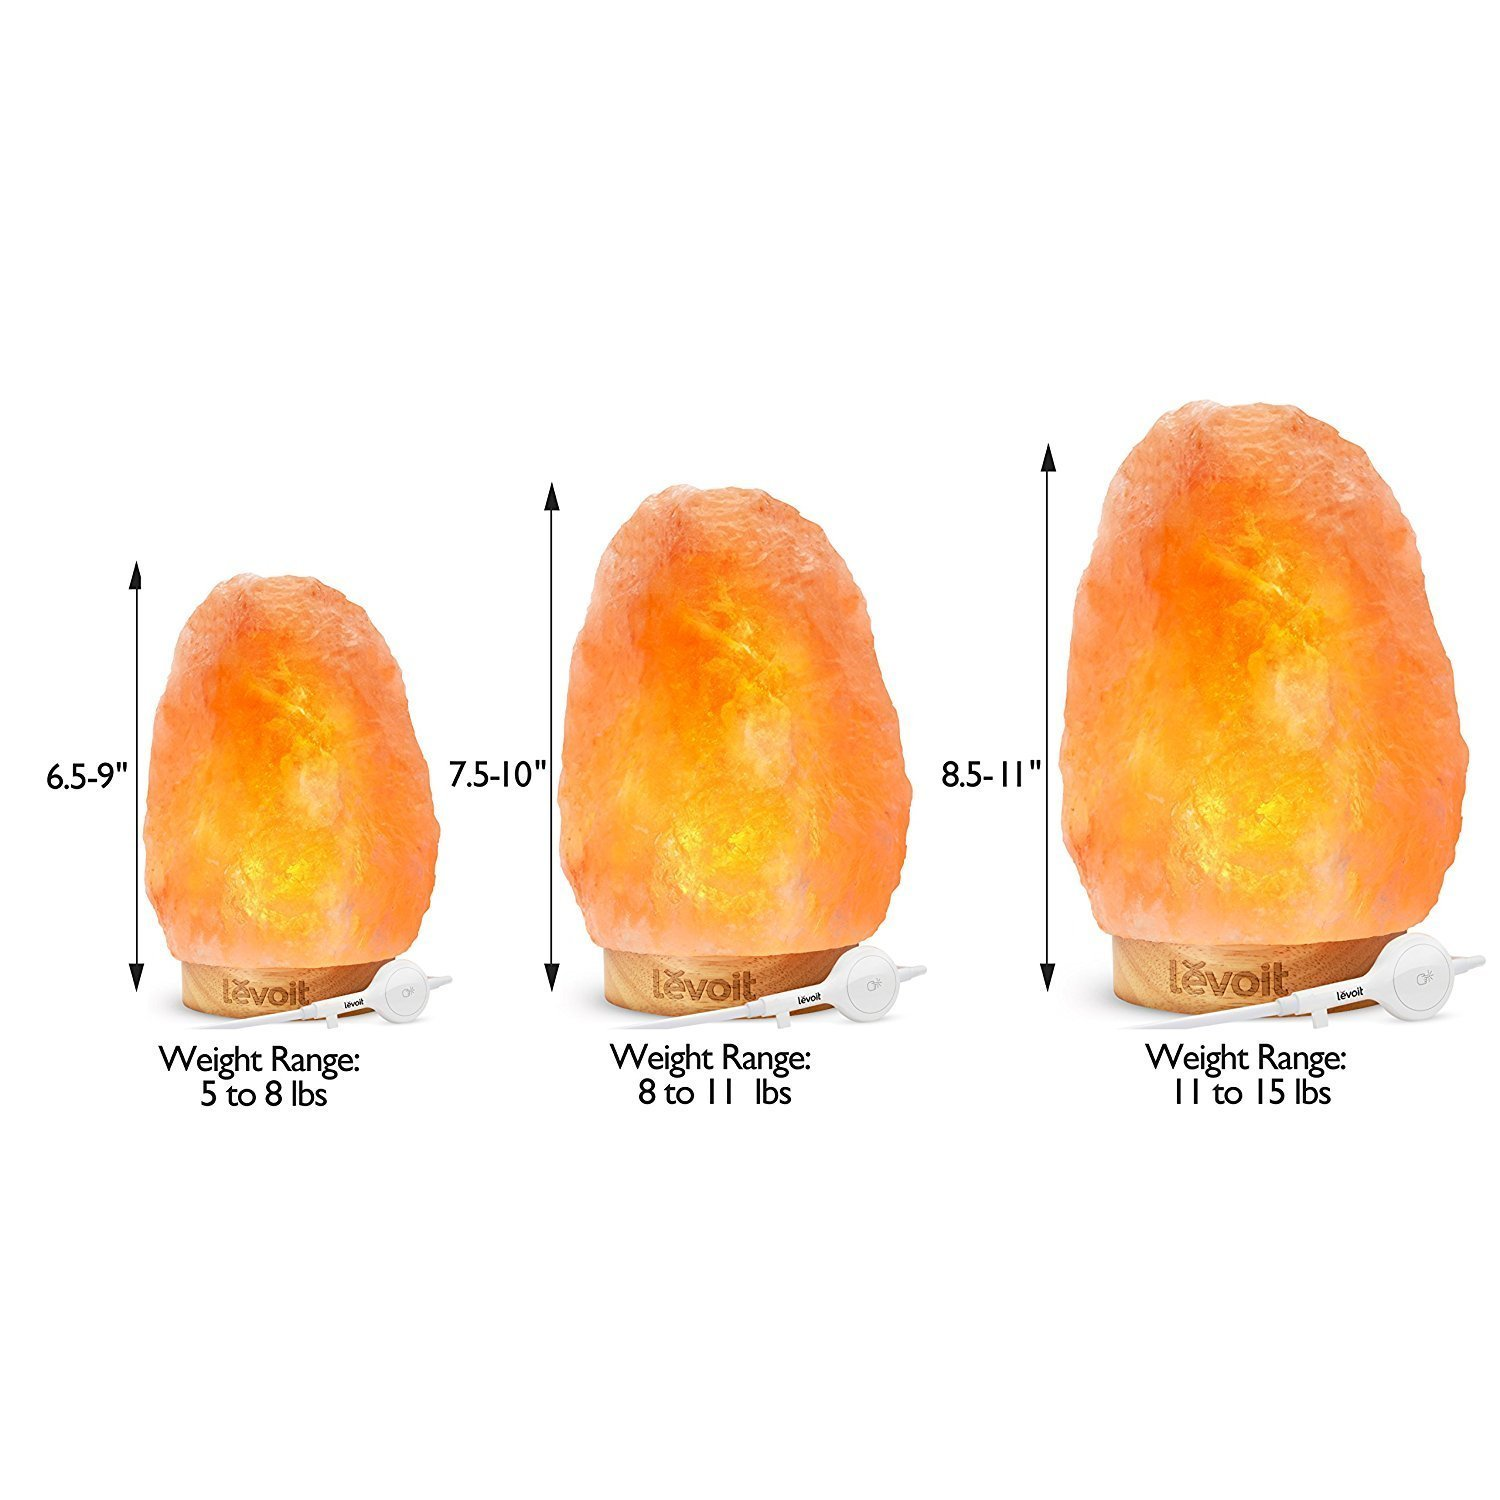 Levoit Salt Lamp, Himalayan / Hymilain Sea Salt Lamps, Pink Crystal Large Salt Rock Lamp, Night Light, Real Rubber Wood Base, Dimmable Touch Switch, Luxury Gift Box(UL-Listed, 2 Extra Original Bulbs) by LEVOIT (Image #9)